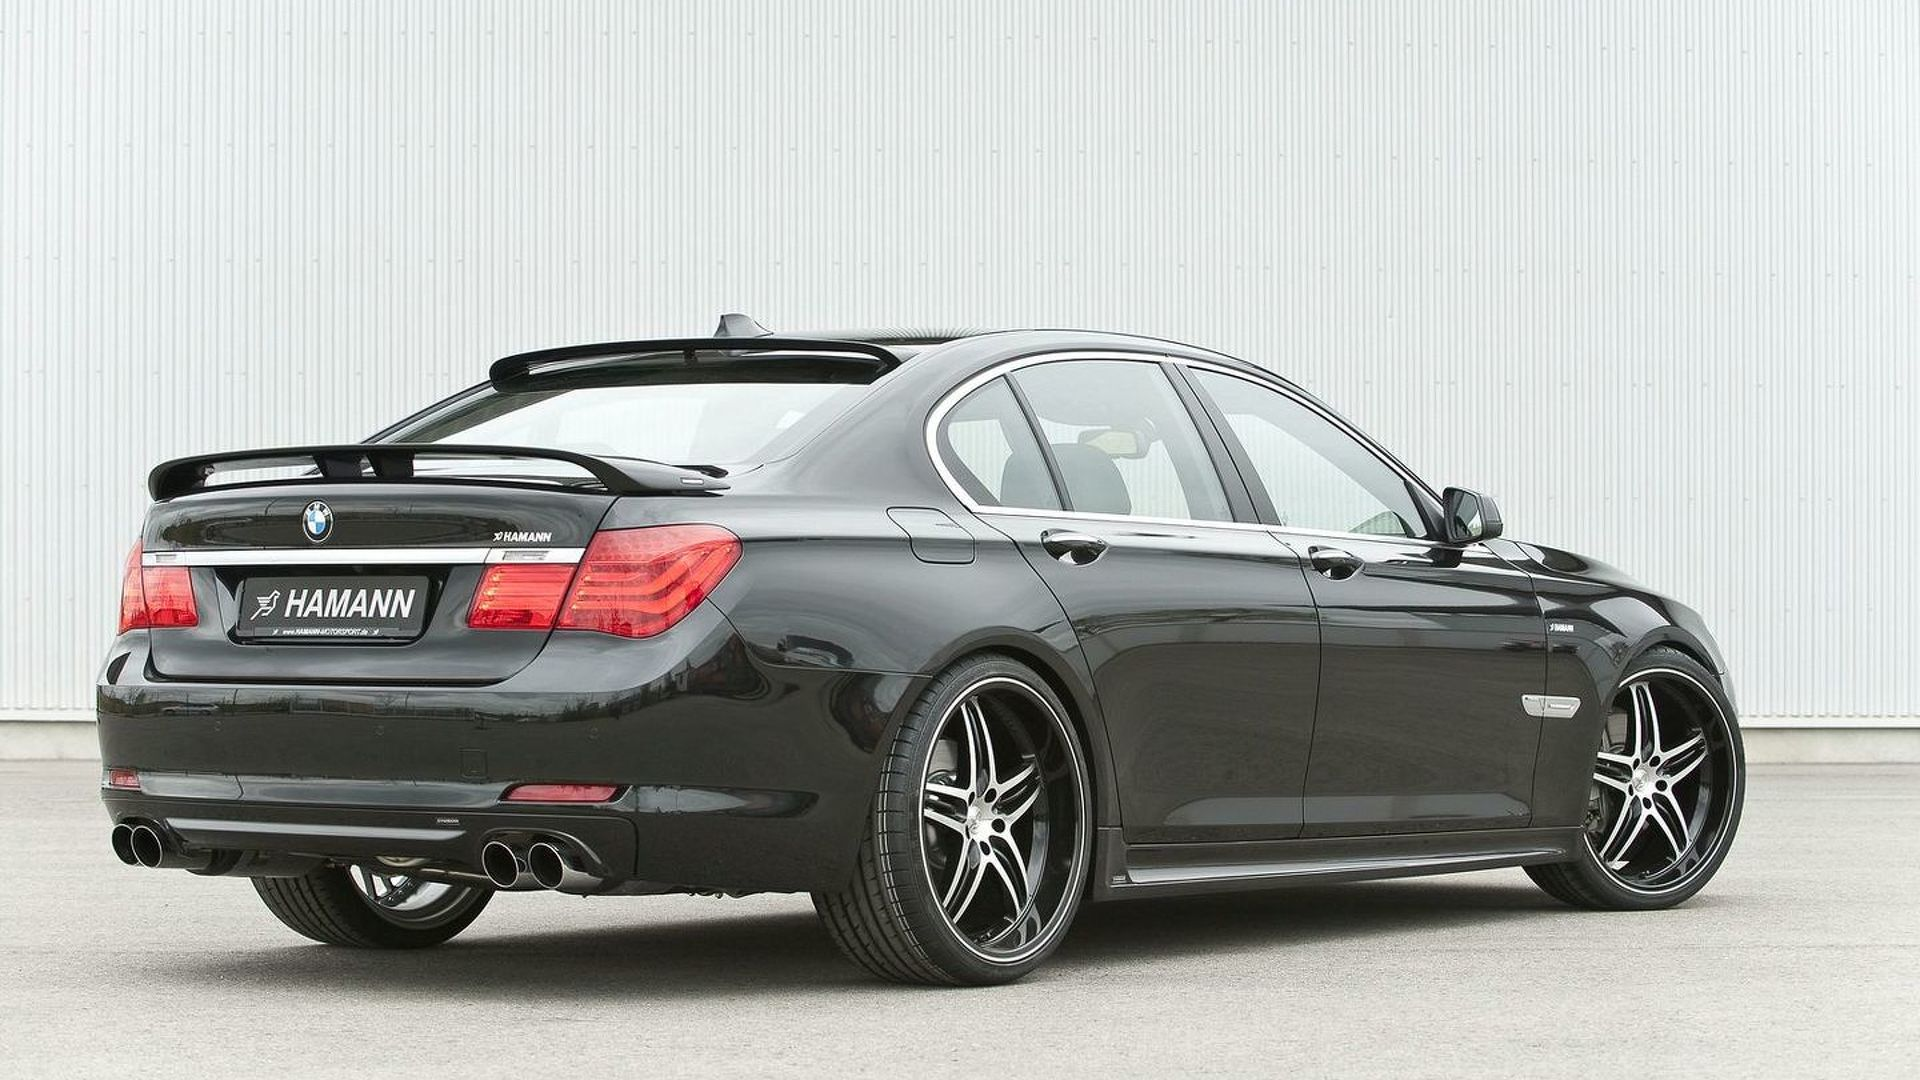 2009 BMW 7 Series Details Released